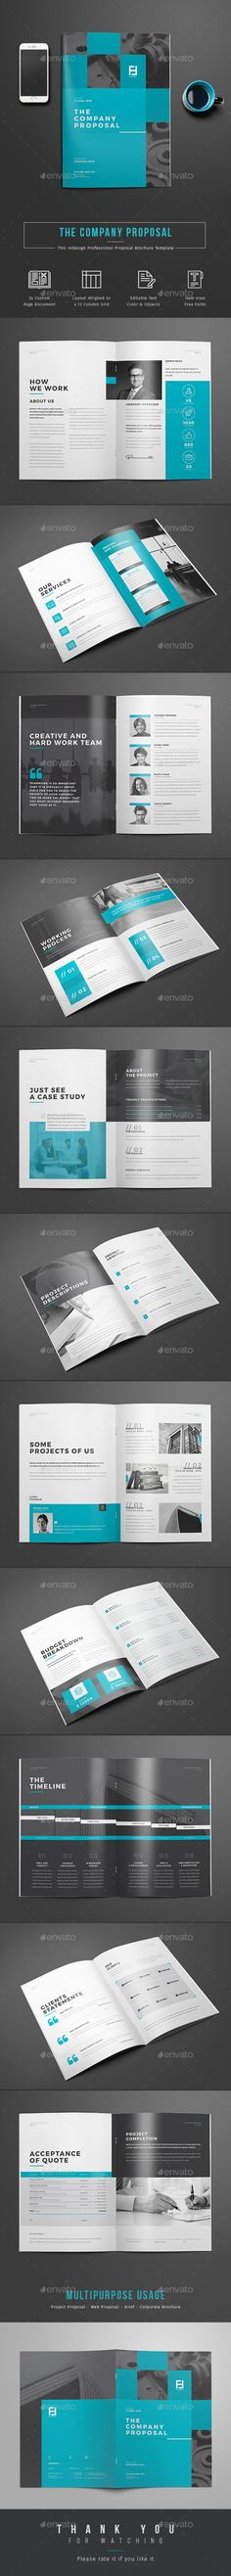 Professional Business Proposal Template … | Pinteres…